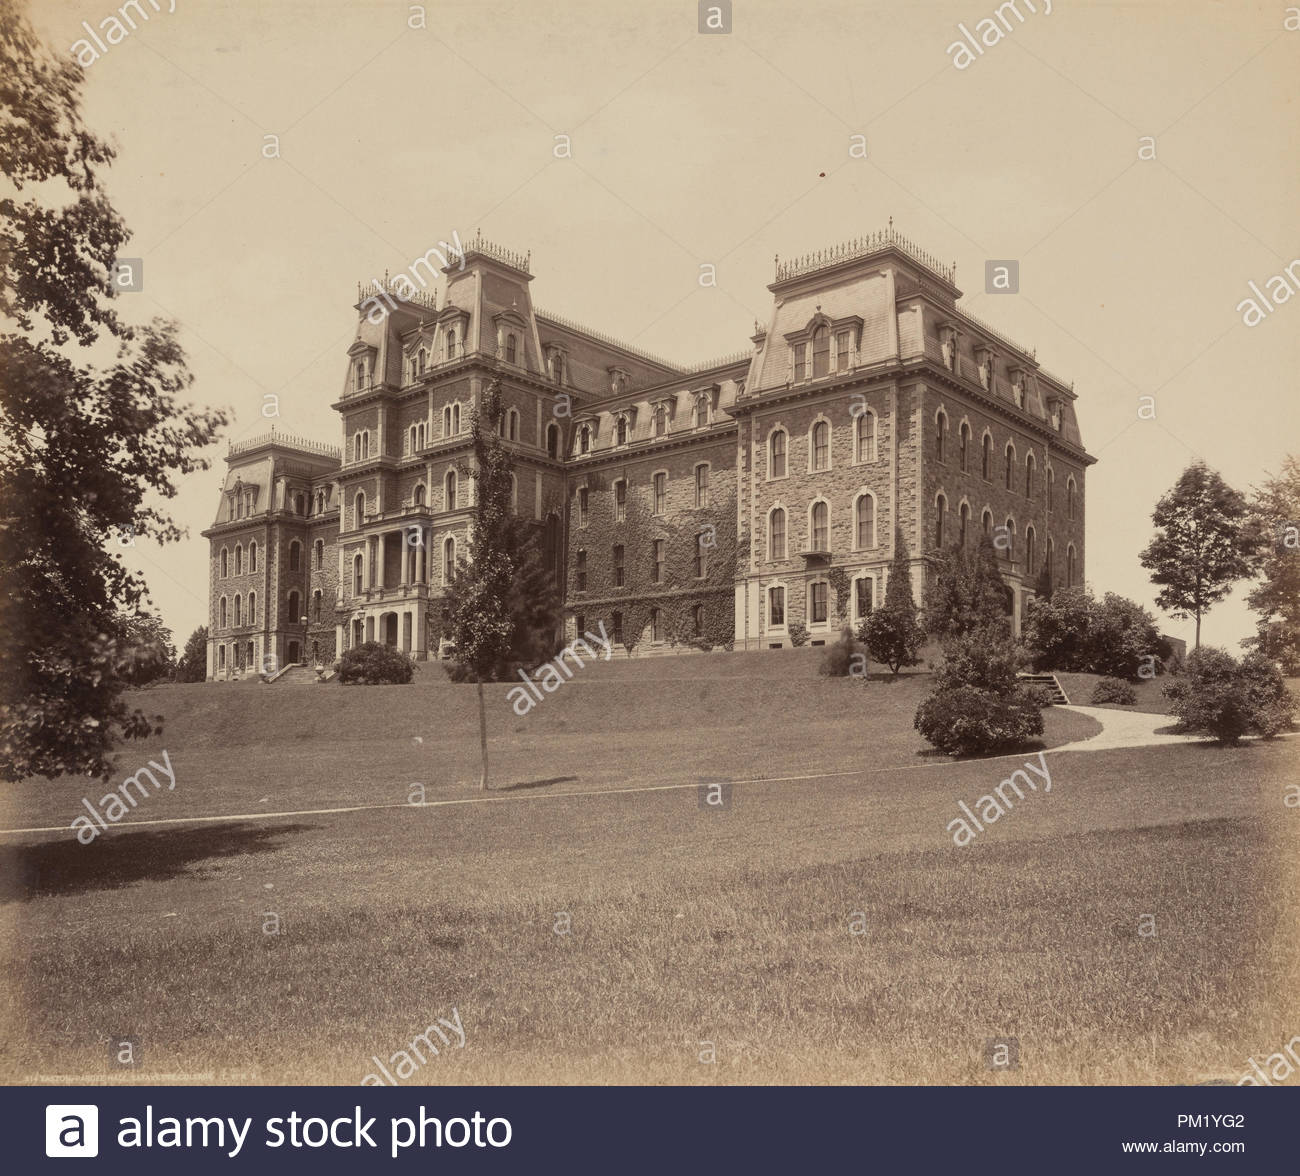 Easton, Pardee Hall, Lafayette College. Dated: c. 1895. Dimensions: image: 43.7 × 52.1 cm (17 3/16 × 20 1/2 in.)  mount: 49.7 × 60.5 cm (19 9/16 × 23 13/16 in.). Medium: albumen print. Museum: National Gallery of Art, Washington DC. Author: William H. Rau. - Stock Image